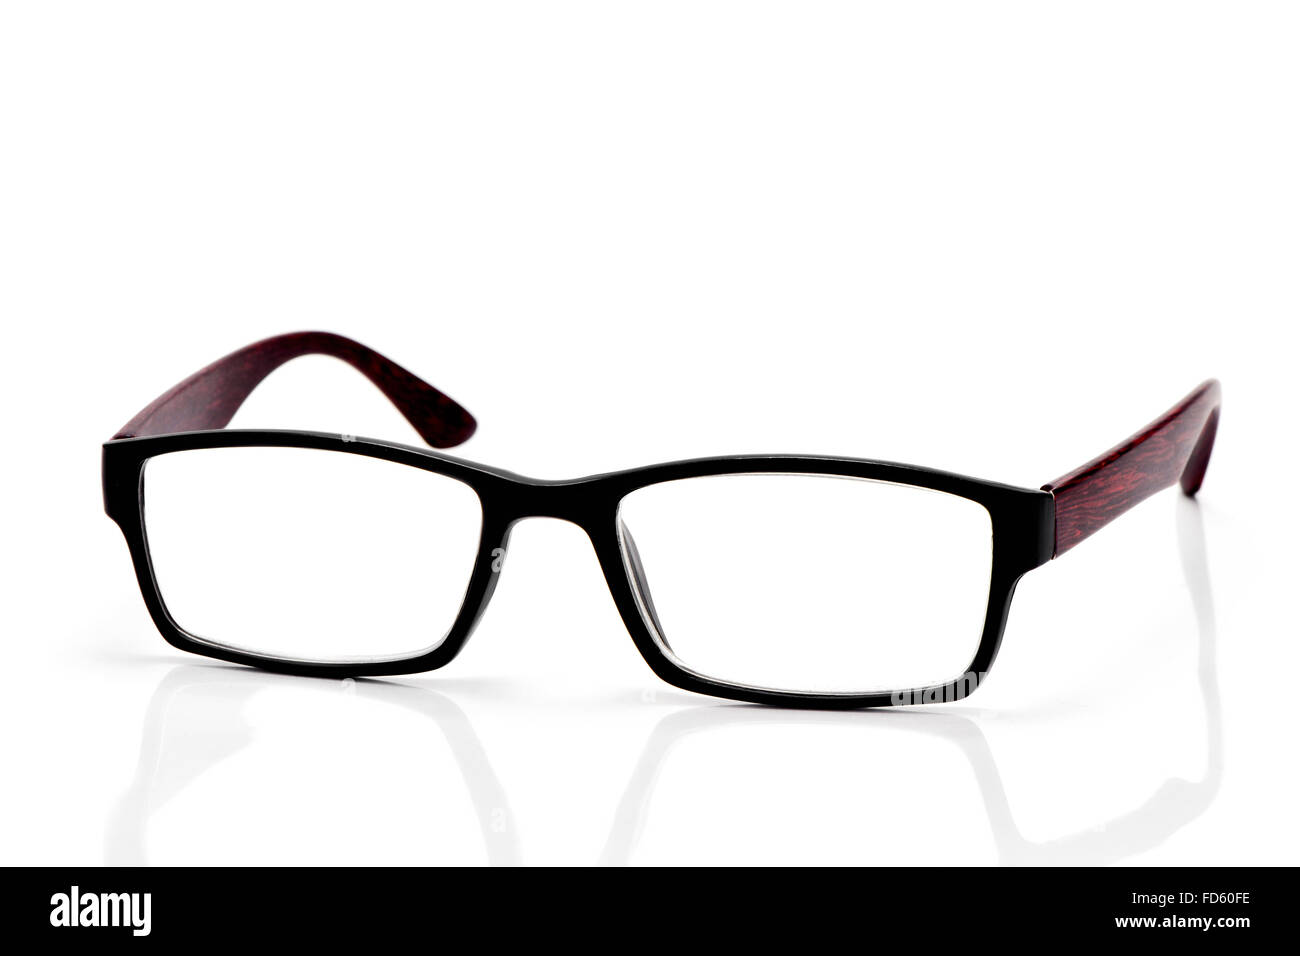 closeup of a pair of plastic and wooden rimmed eyeglasses on a white background - Stock Image